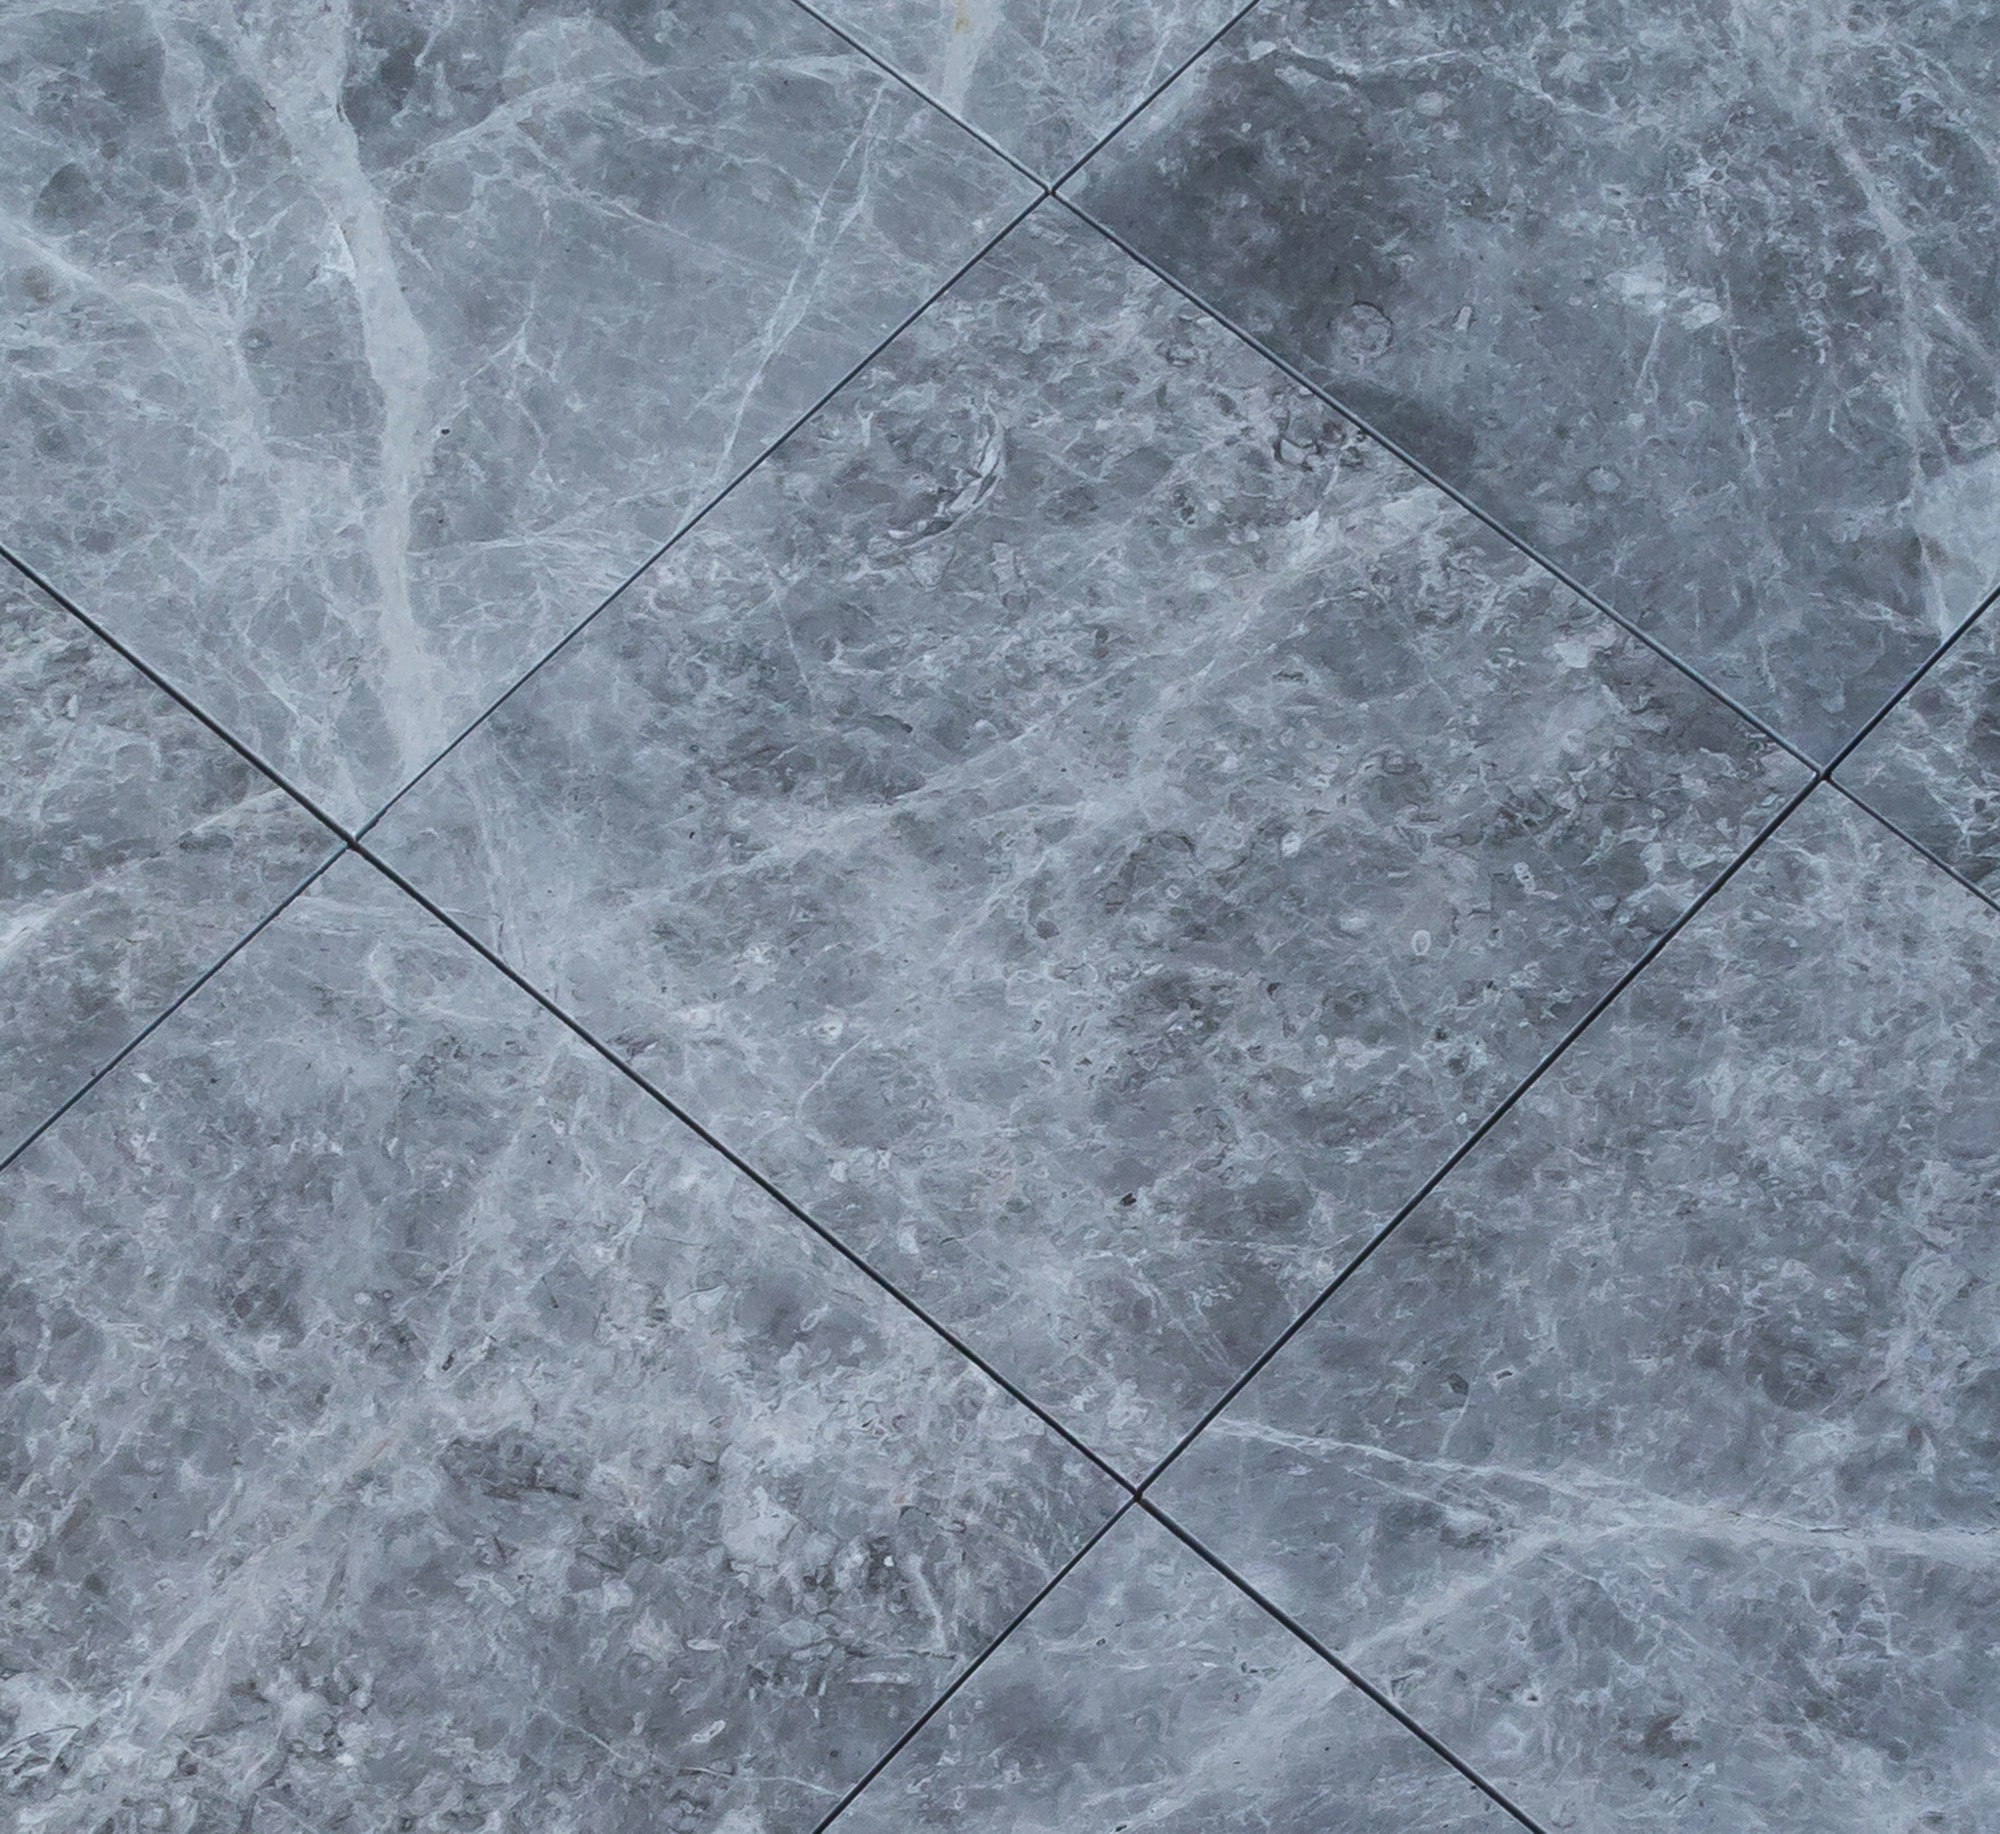 Kesir Marble Tile Polished Tundra Earth Gray 12 X12 Polished